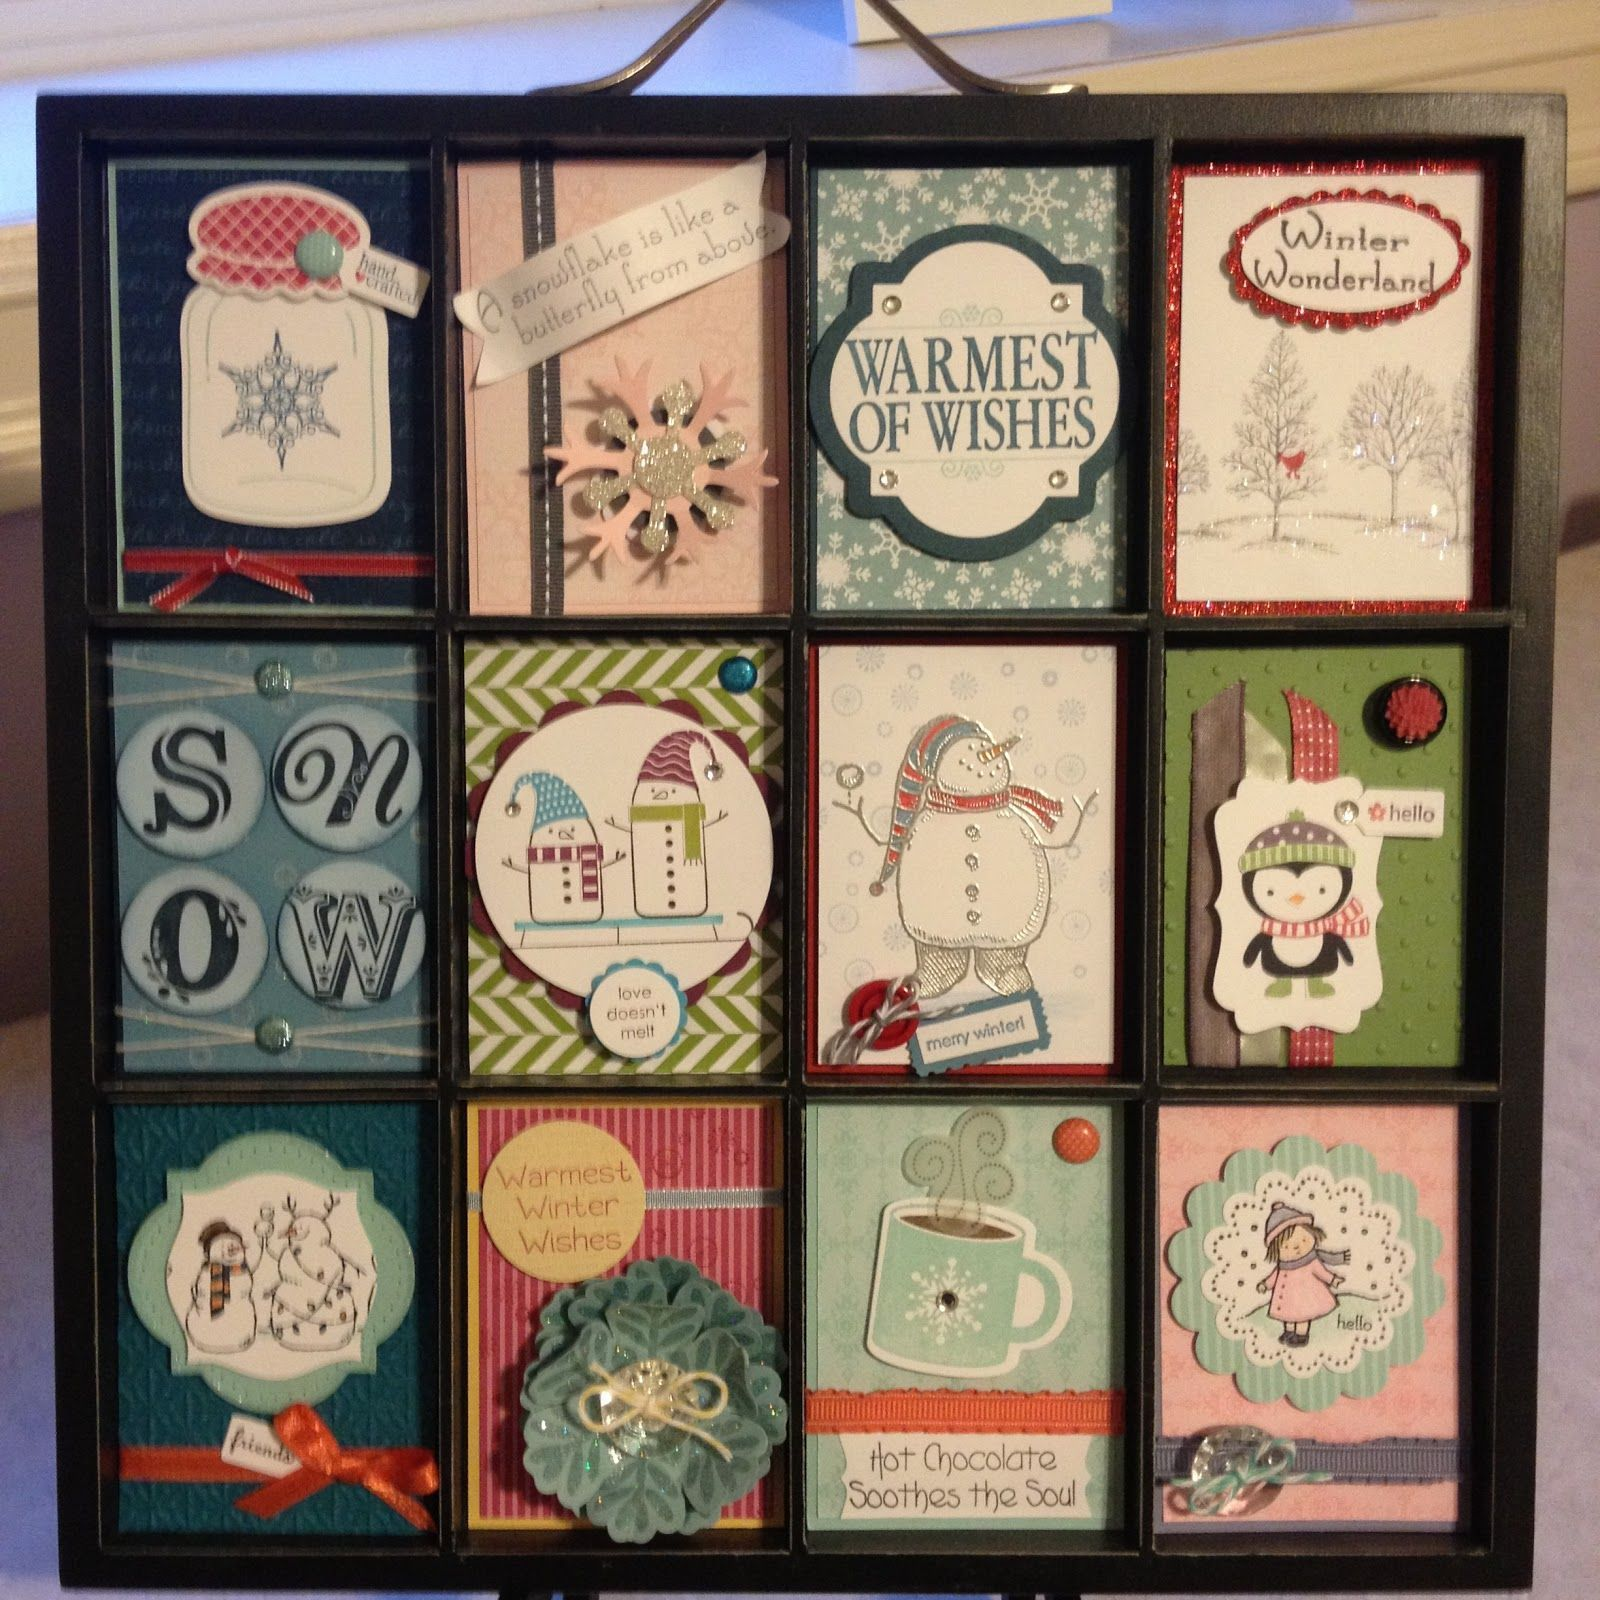 Catherine Loves Stamps: Winter Printers Tray #printertray Catherine Loves Stamps: Winter Printers Tray #printerstray Catherine Loves Stamps: Winter Printers Tray #printertray Catherine Loves Stamps: Winter Printers Tray #printerstray